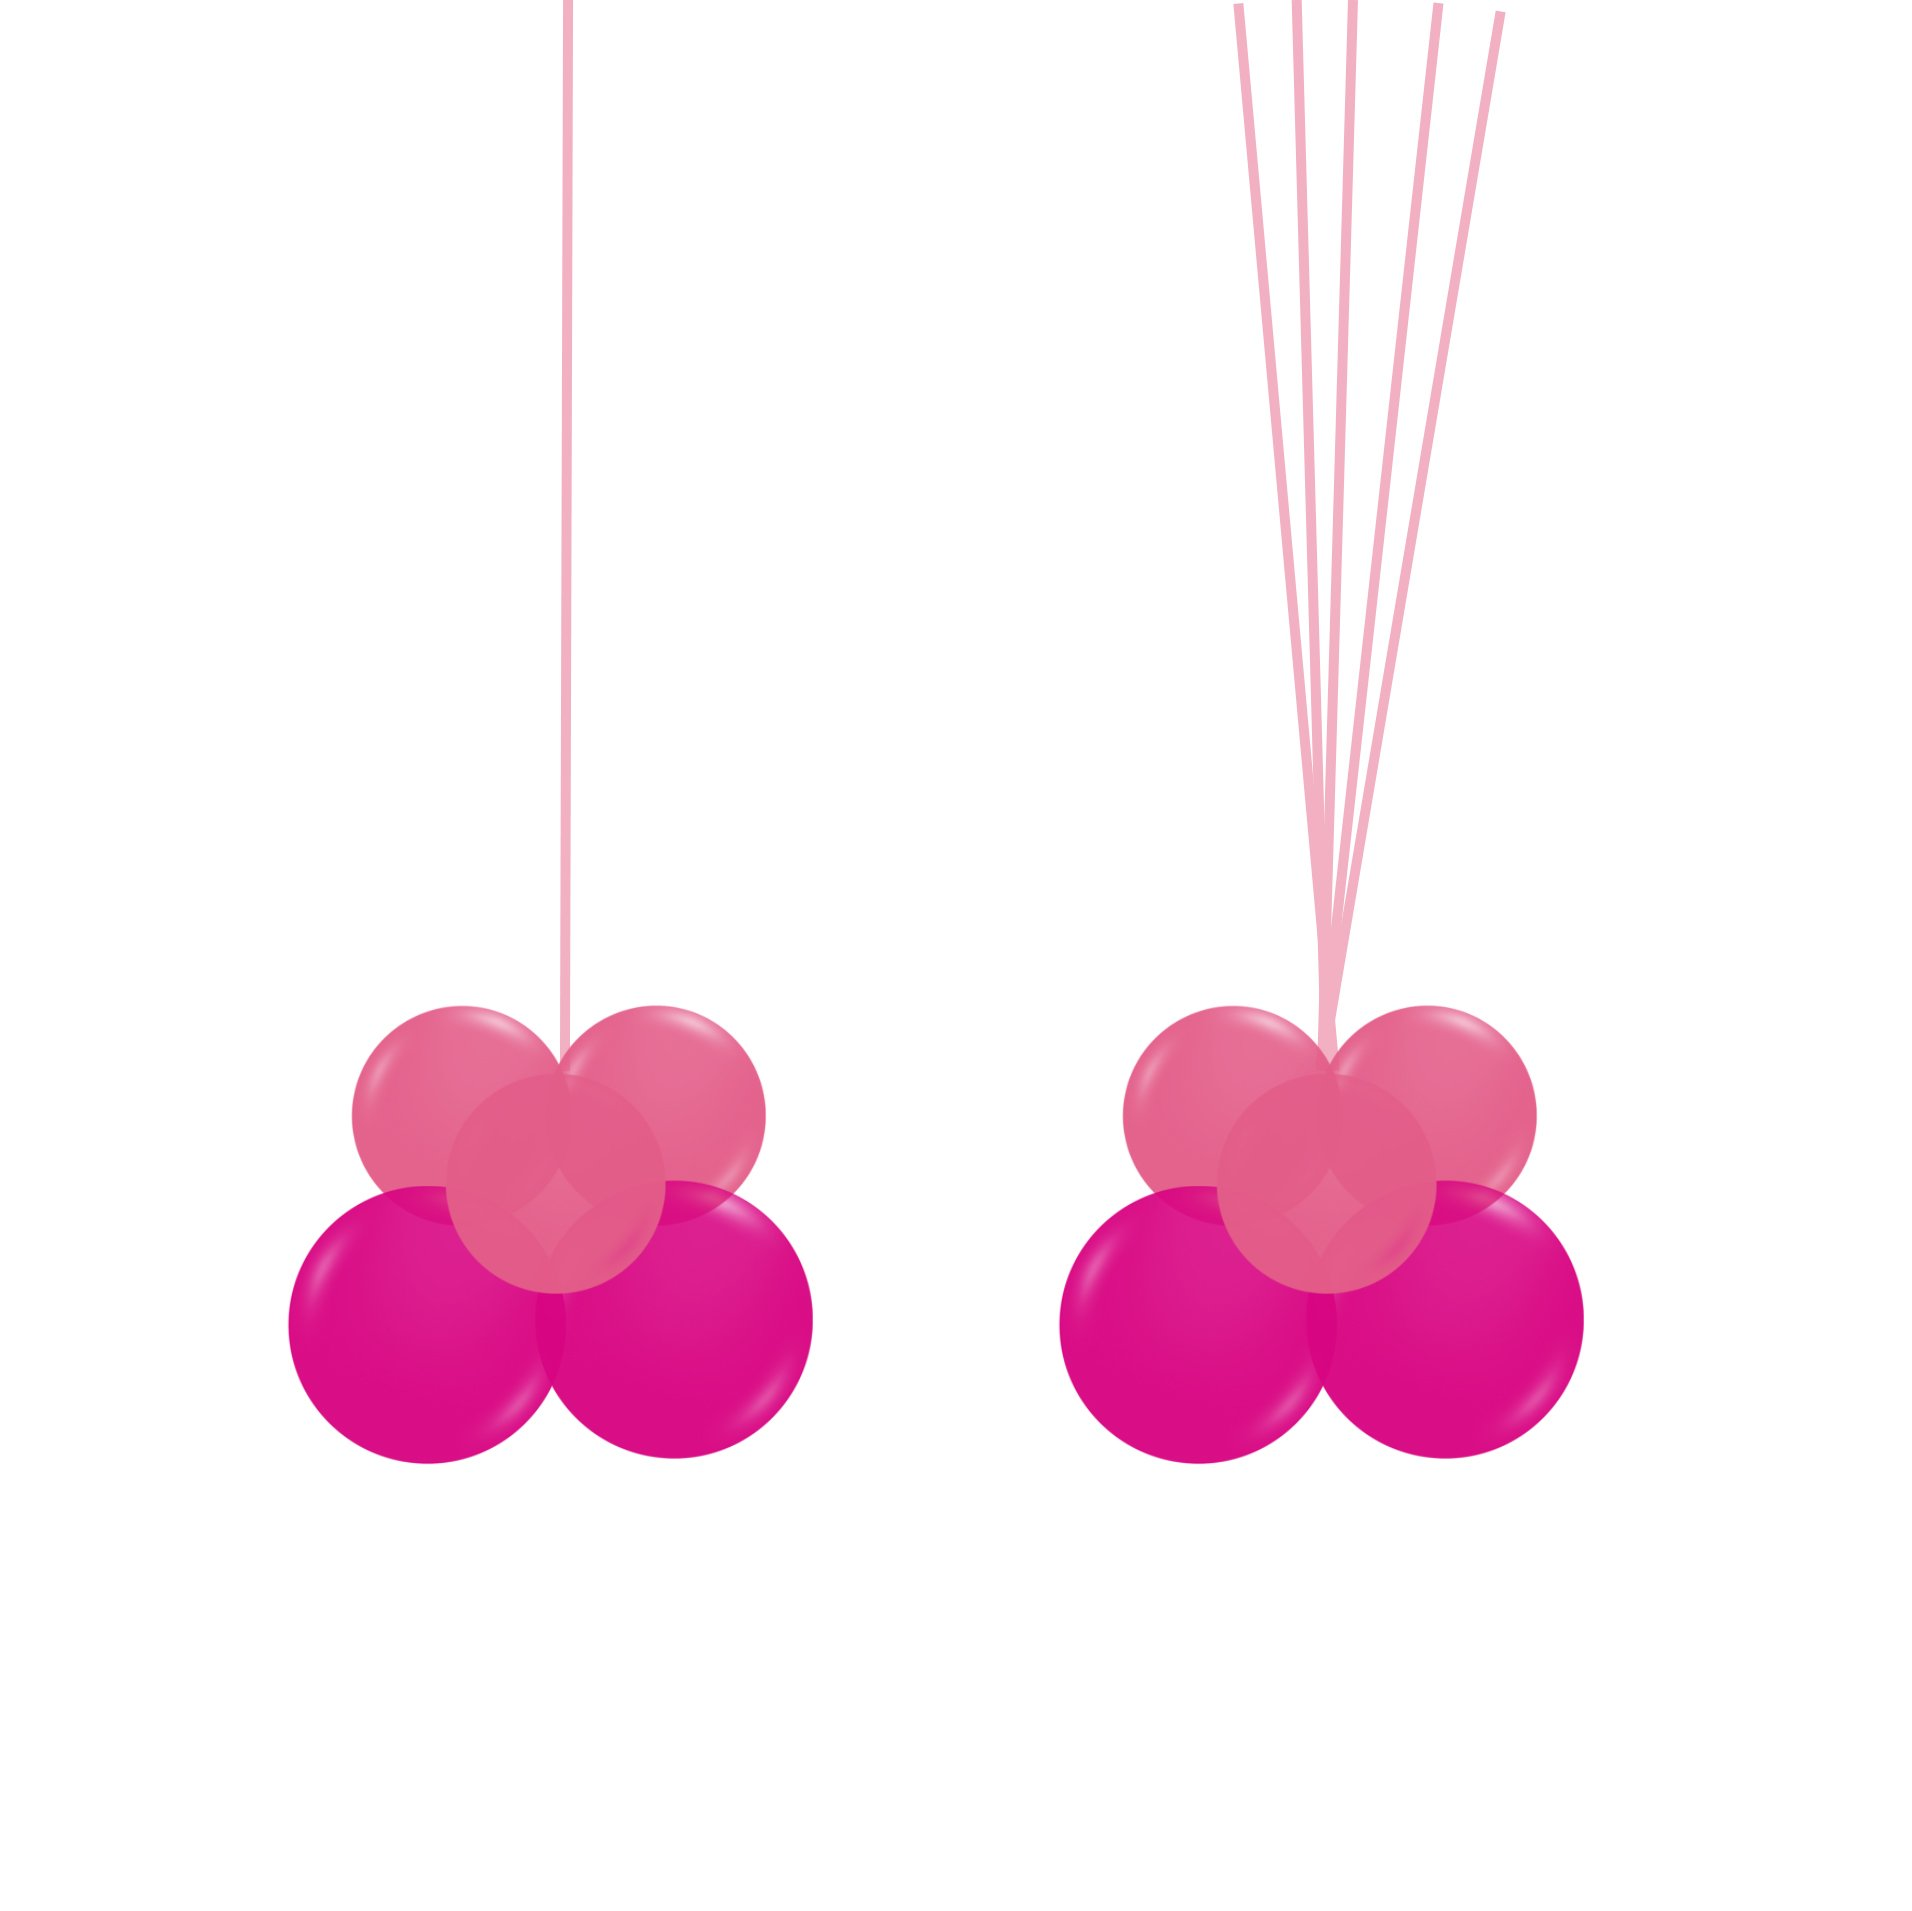 Two Coordinating Mini Balloon Cluster Weights (For Bubble & Add-on Helium Bouquet)